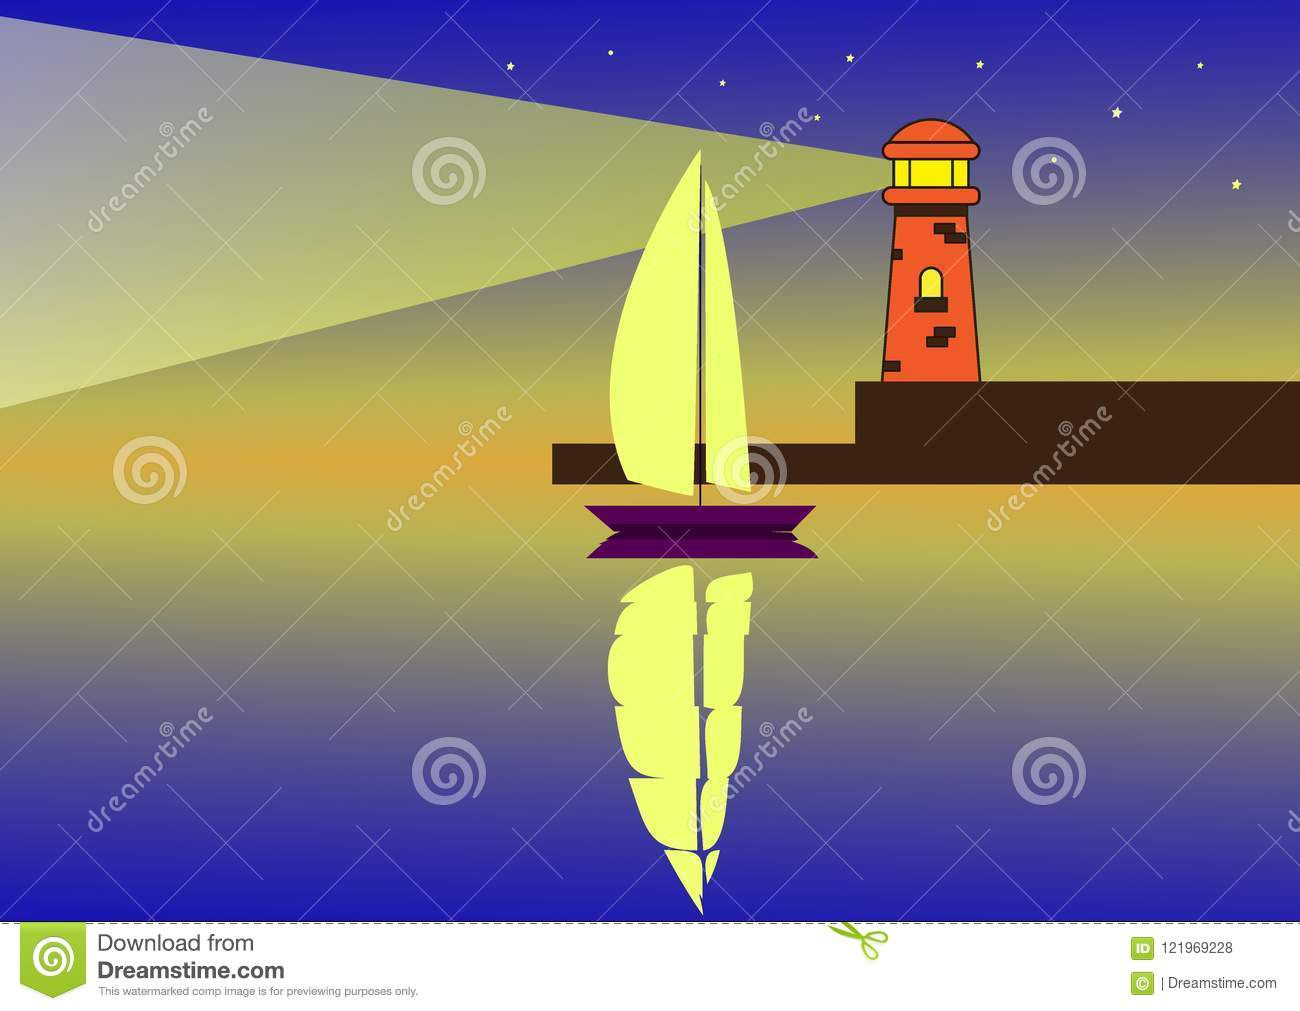 A sailboat at night in the light of a lighthouse